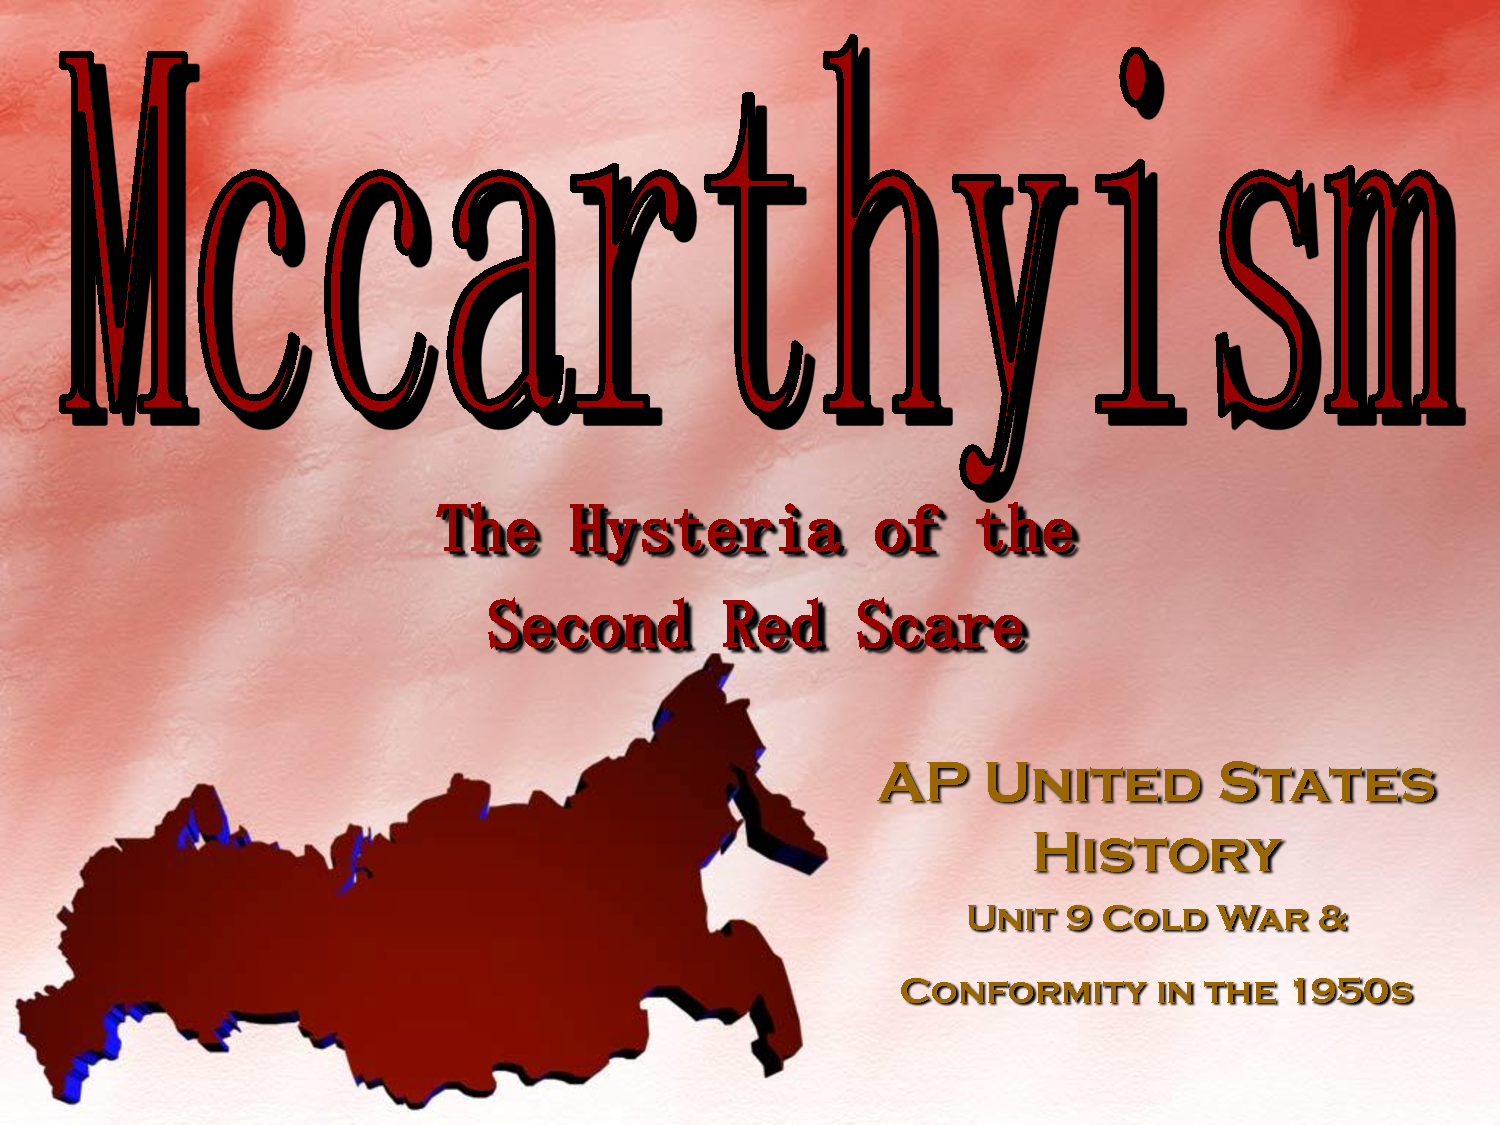 mc carthyism and the media essay